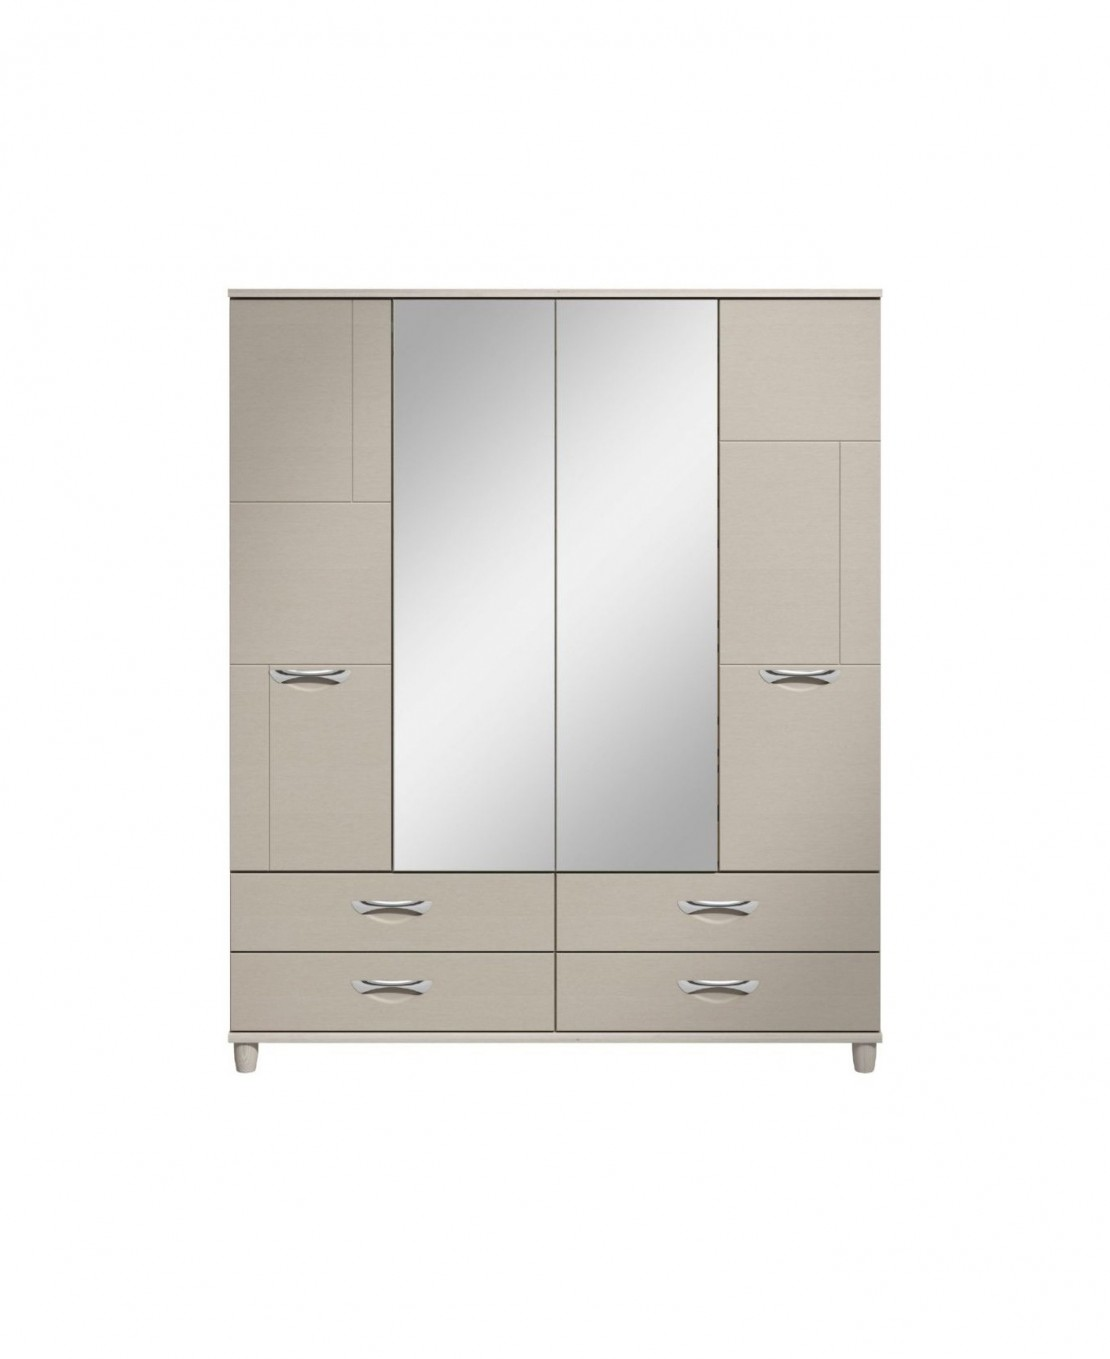 /_images/product-photos/kt-furniture-moda-cashmere-4-door-centre-mirrored-gents-robe-a.jpg